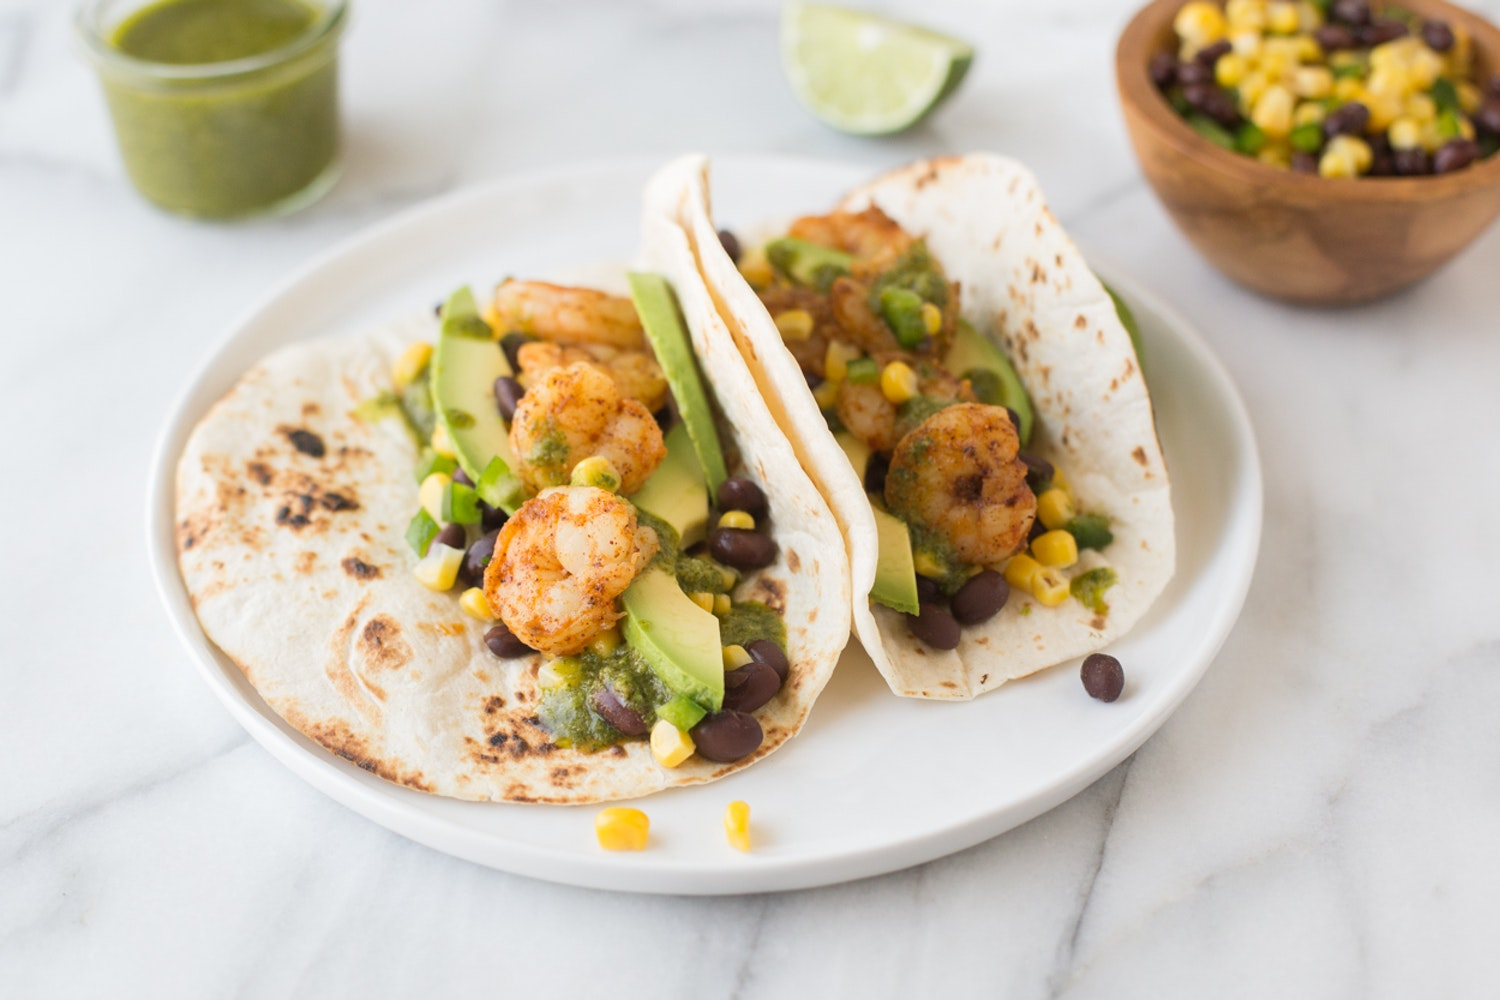 20180521 chimichurri shrimp tacos nm 1.jpg?ixlib=rails 2.1